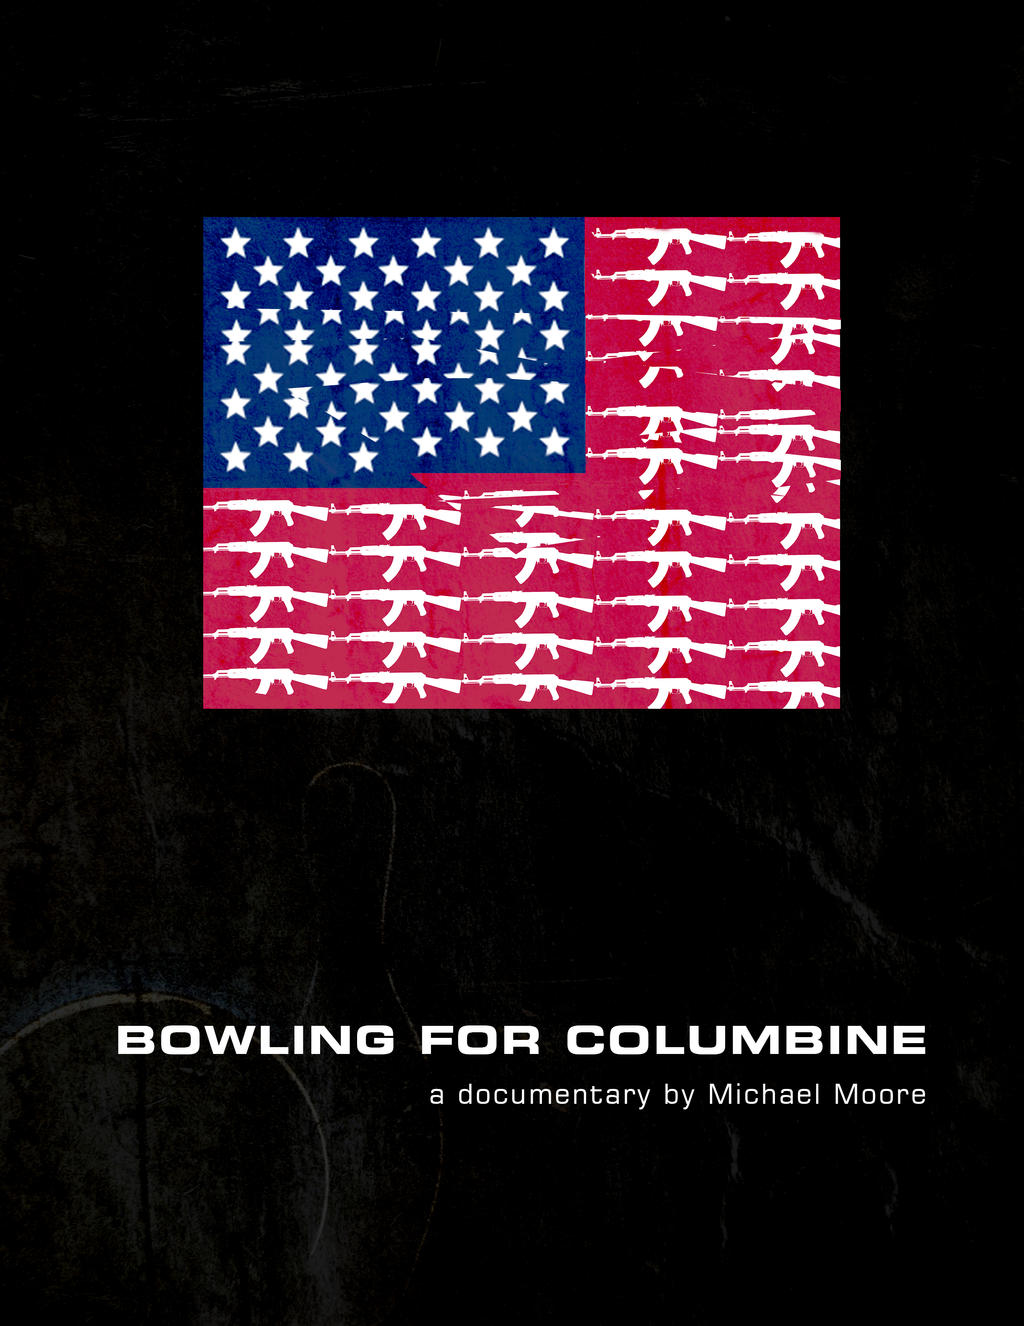 bowling of columbine essay Bowling for columbine bowling for columbine is a documentary that raises many social issues that are related to the gun problems in the united states of america some of these issues include the , miss use of guns like the school shooting in.